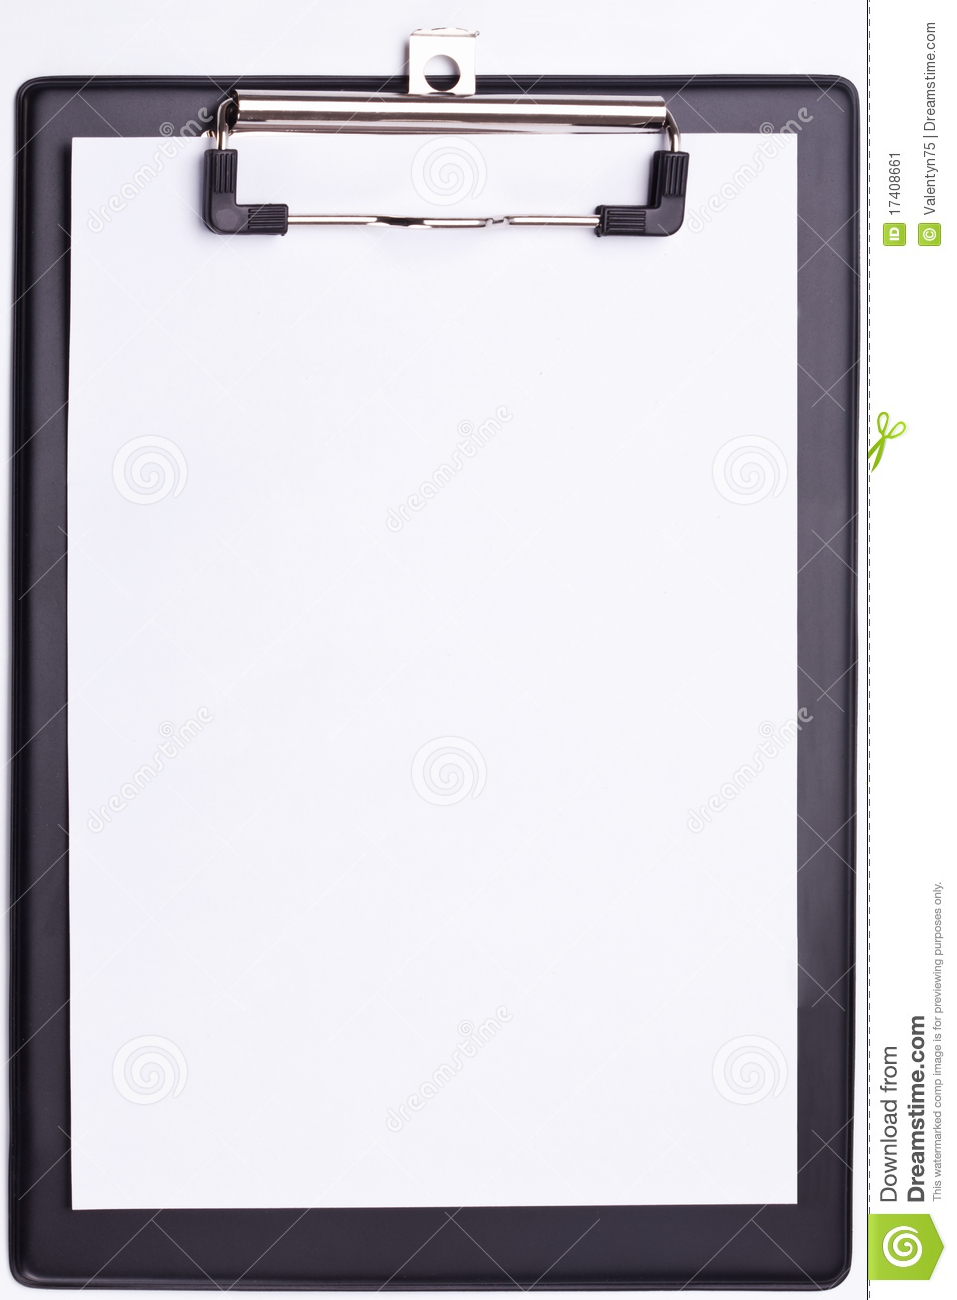 Black Clipboard  Stock Image   Image  17408661